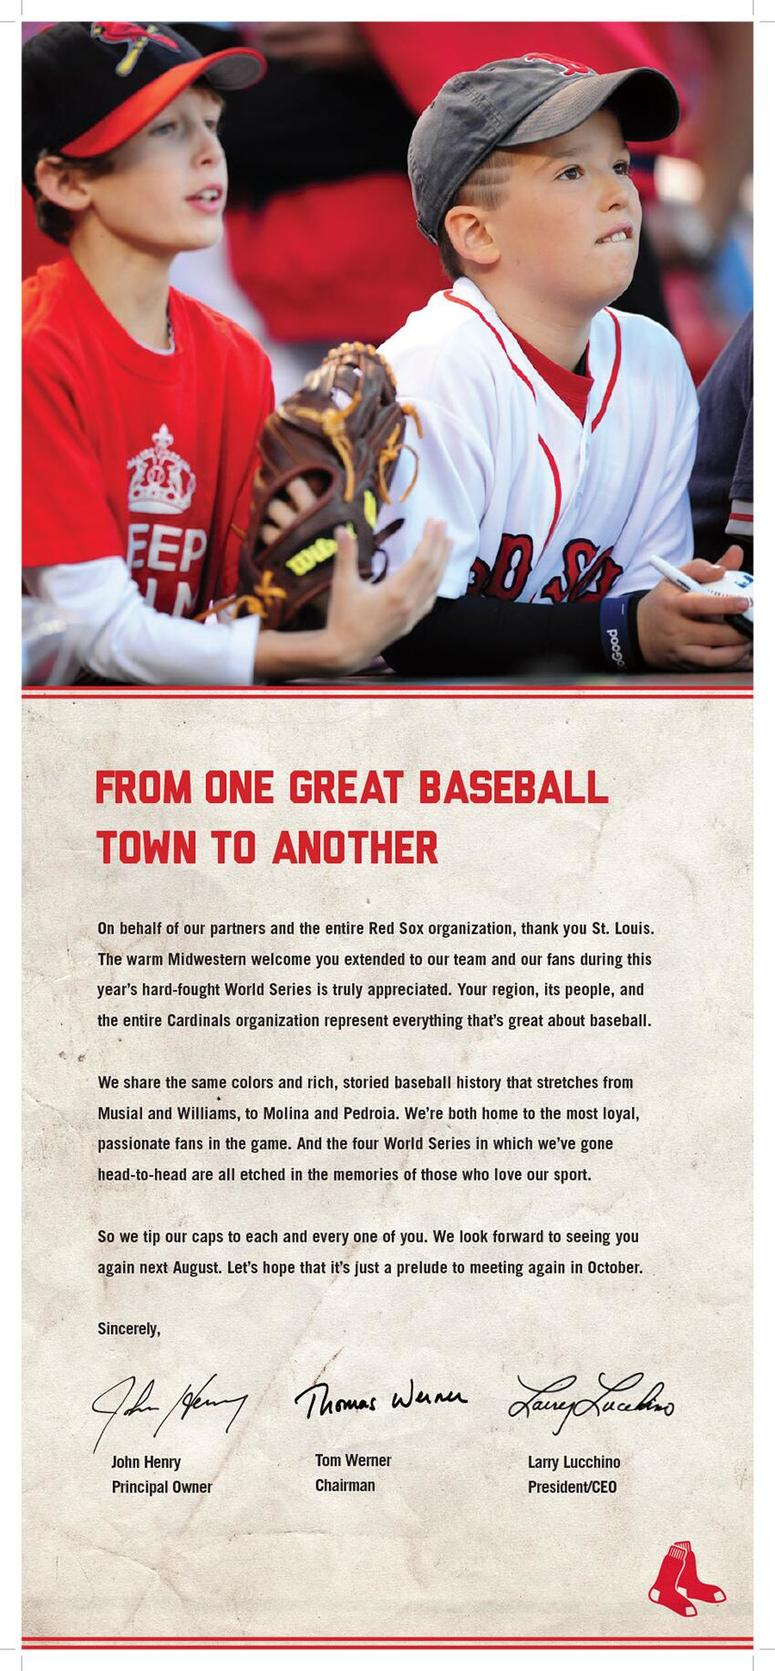 Boston Red Sox add in St. Louis Post-Dispatch in 2013.